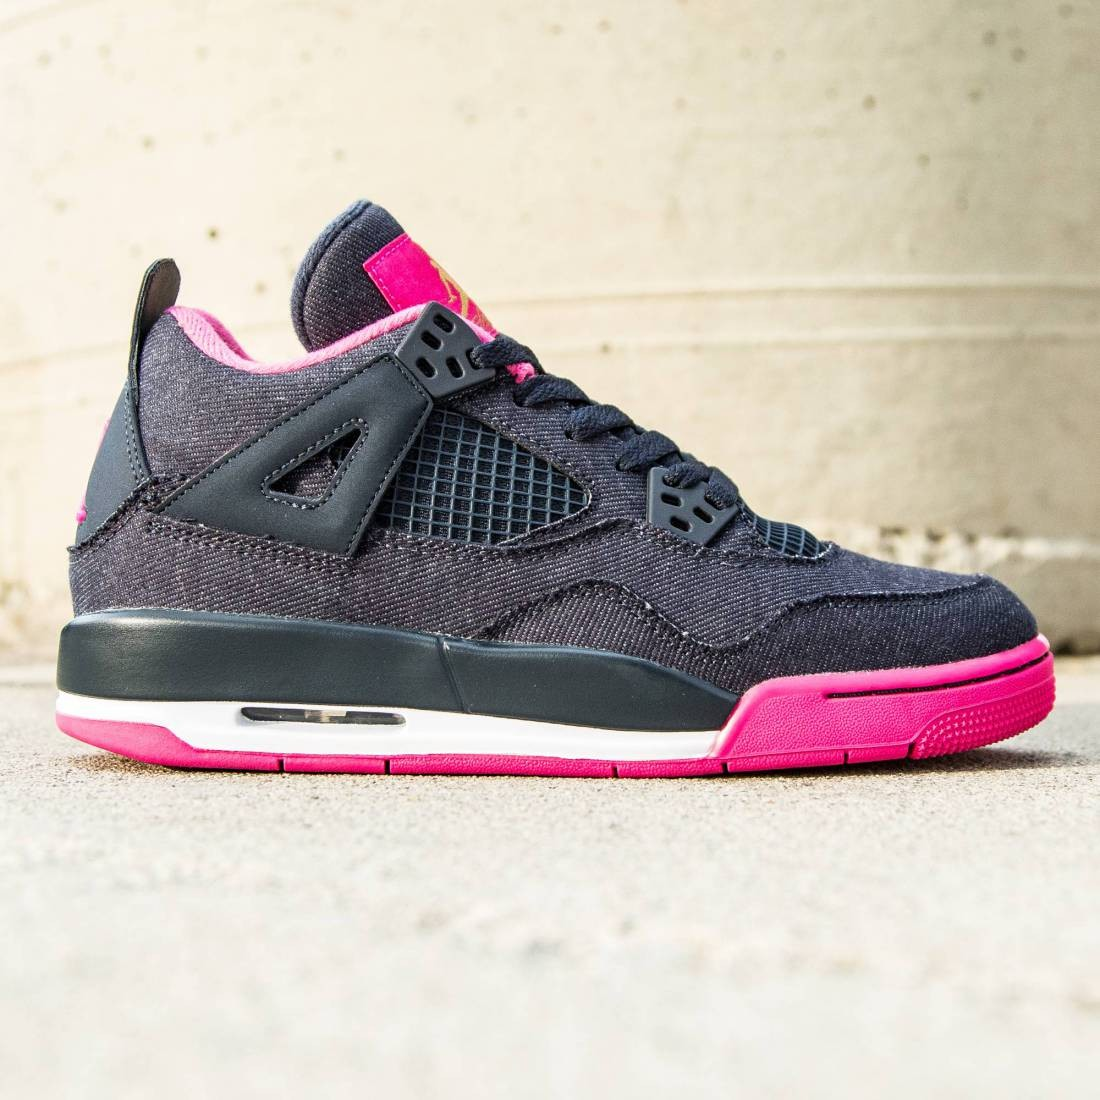 5566403f19f0 Jordan Big Kids Air Jordan 4 Retro GG (navy   dark obsidian   metallic gold    vivid pink)